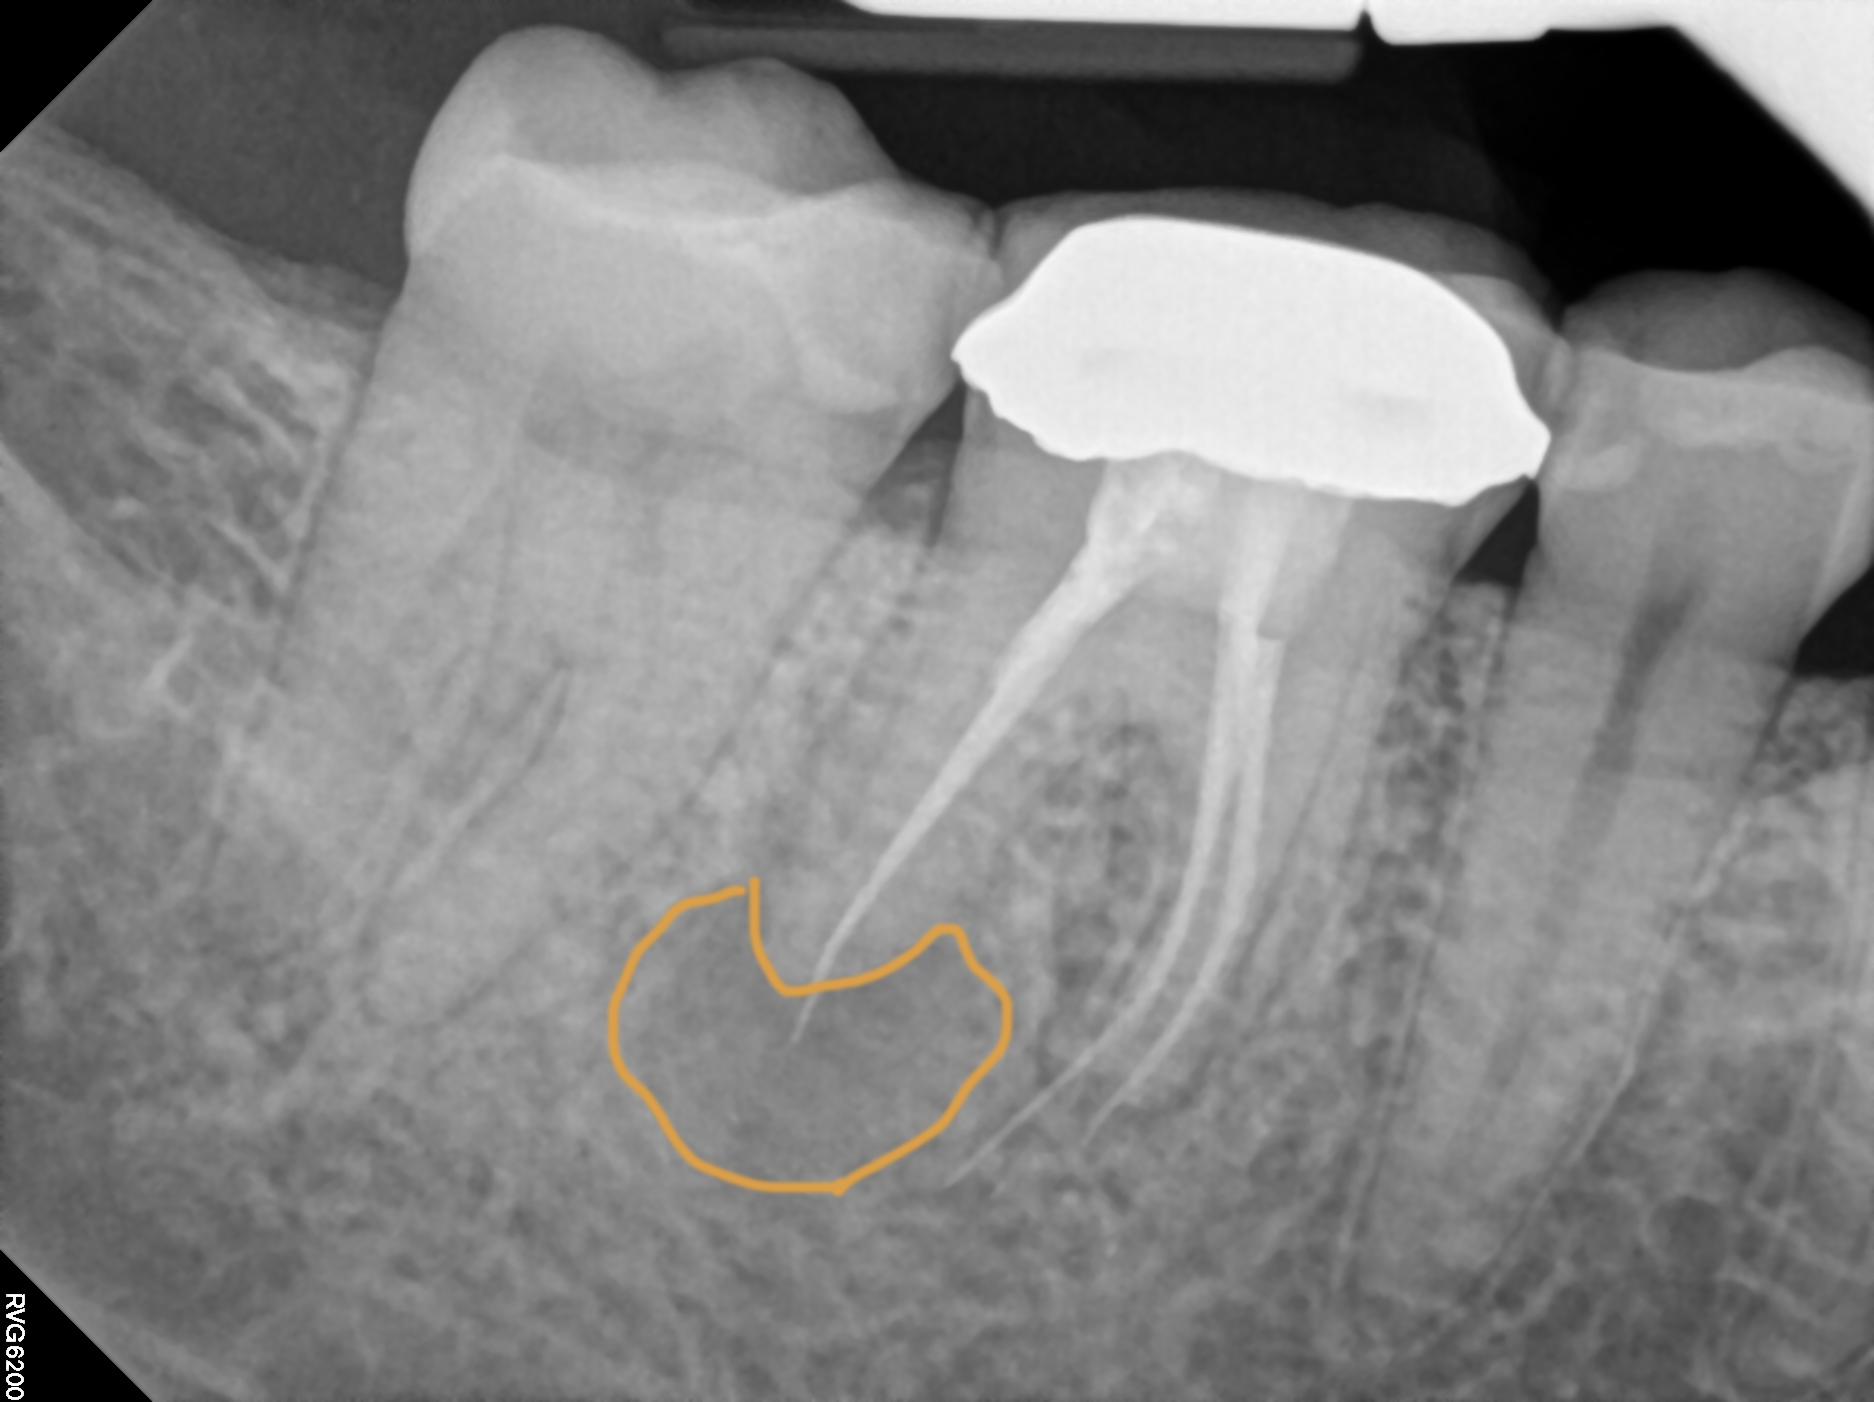 my root canal. the orange outline is the abscess created by the dentist failing to fill one of my canals. you can also see where the material extends too far beyond the tooth.